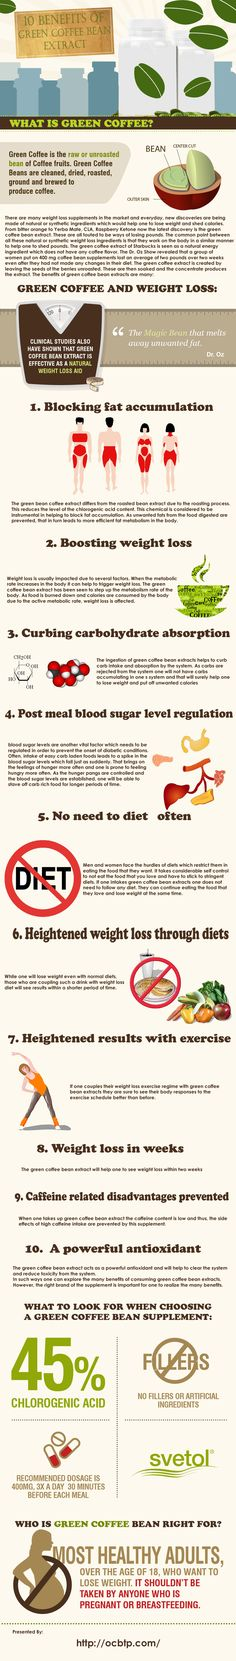 green-coffee-bean-extract-for-weight-loss-infographic